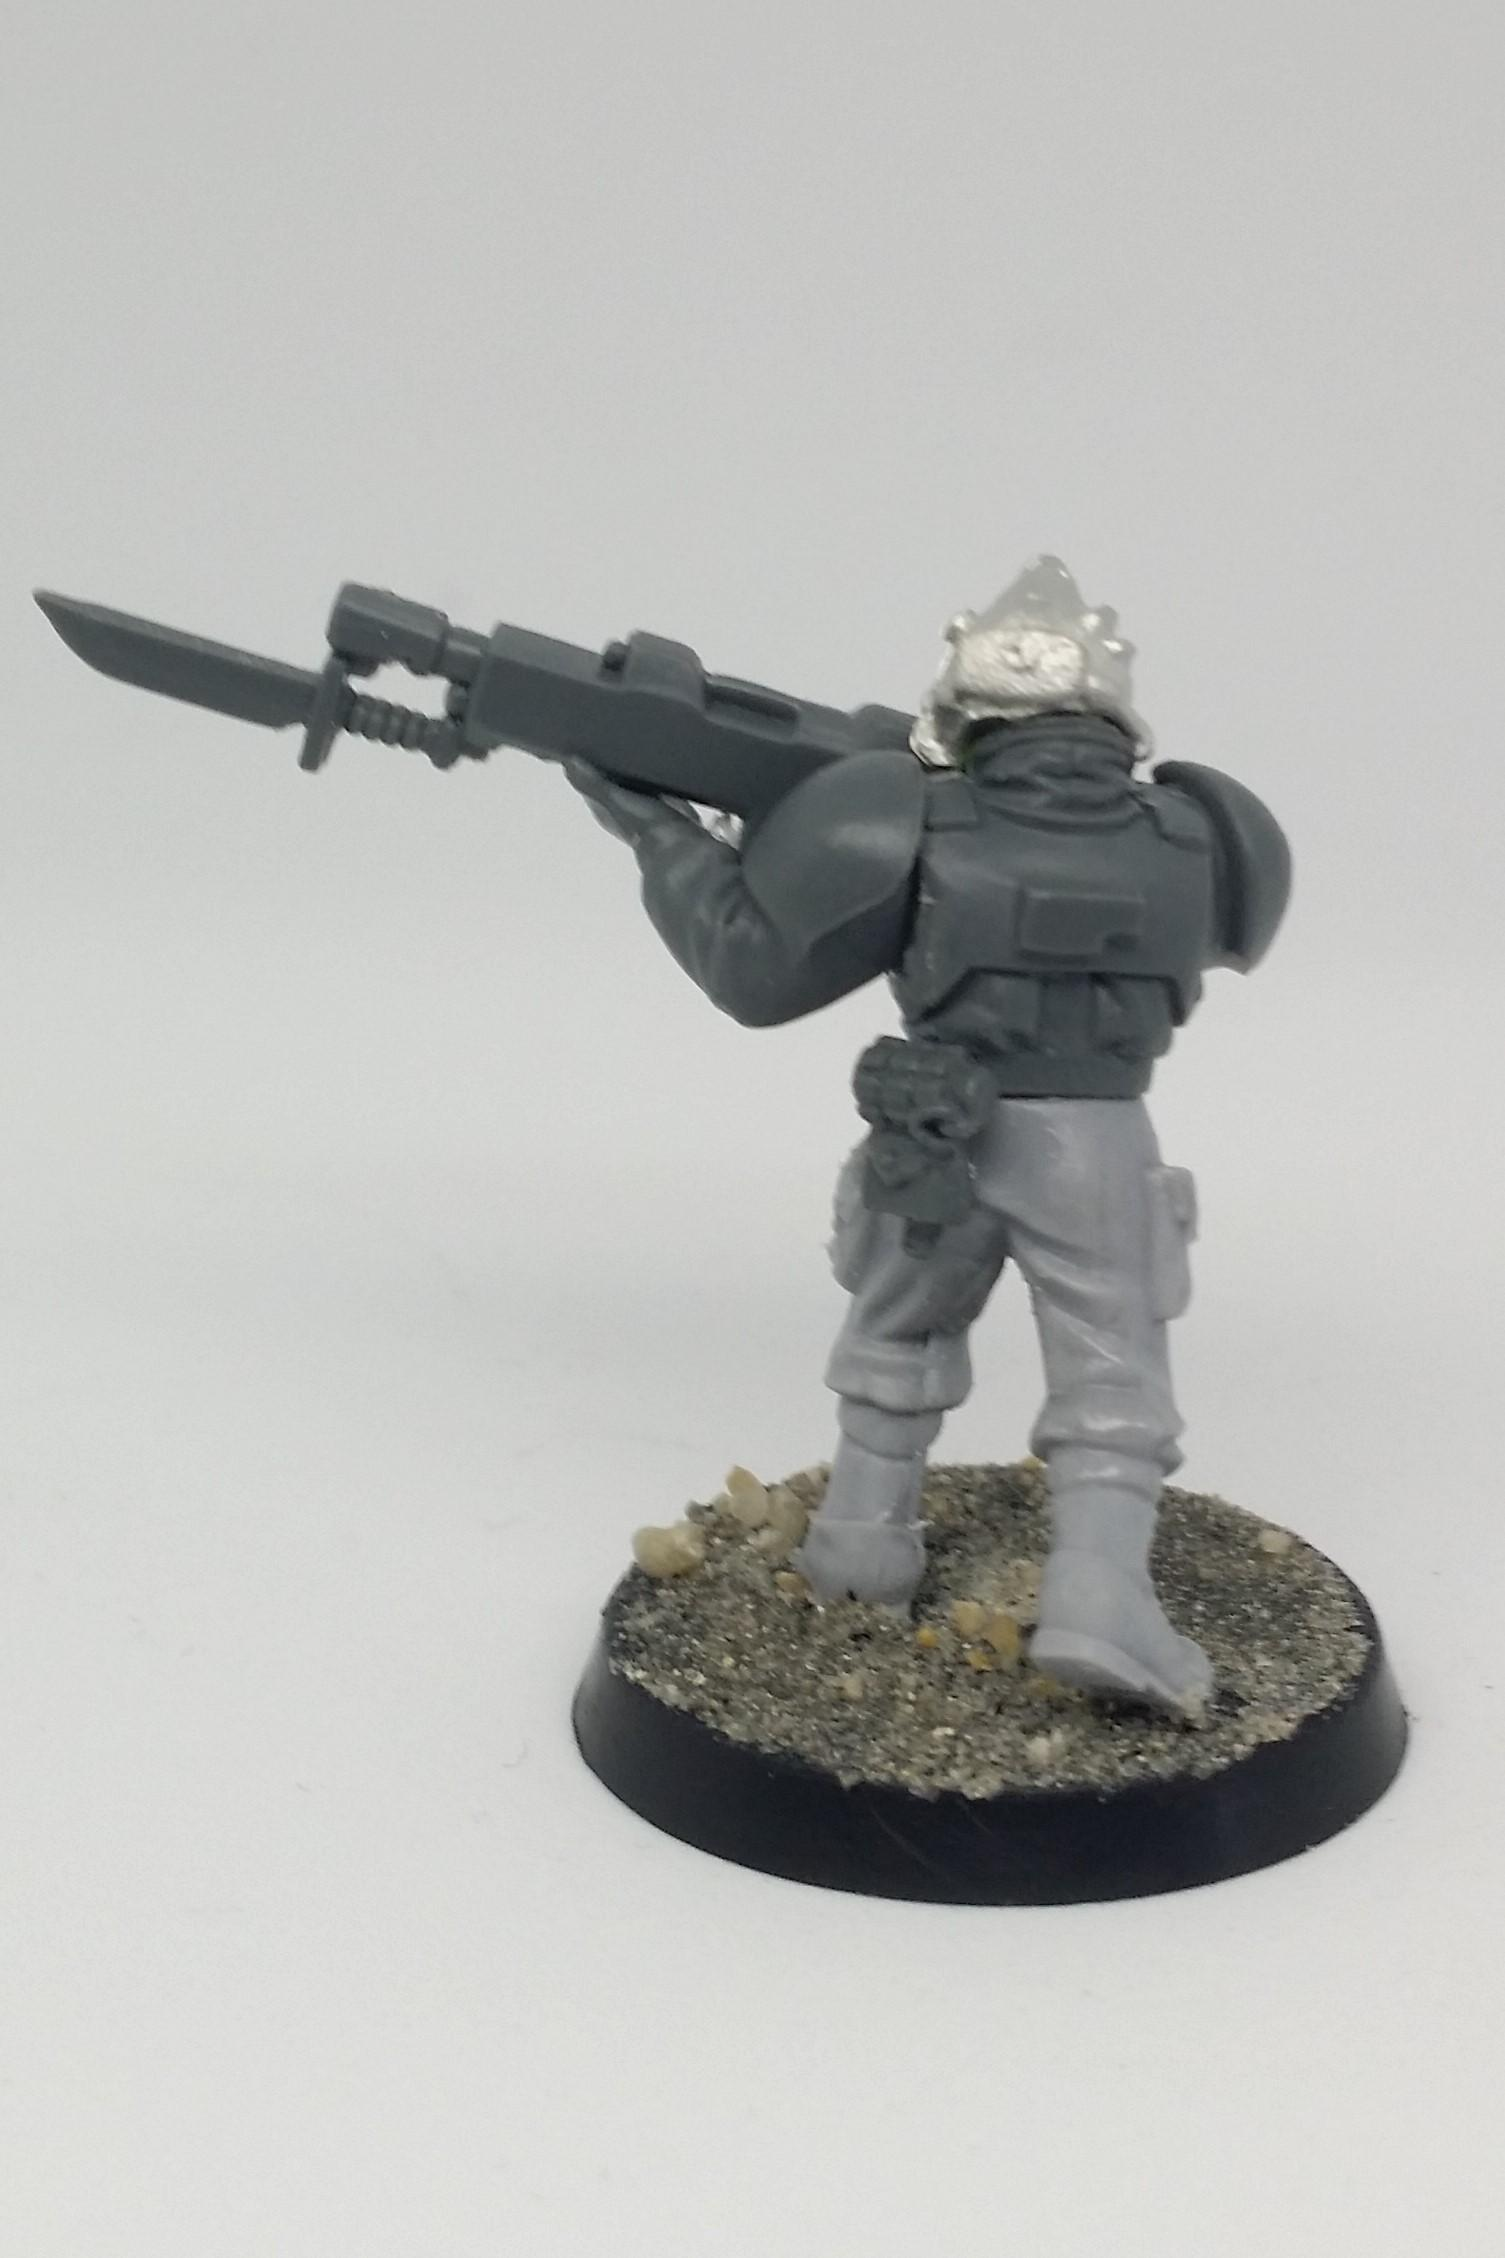 Armsman, Astra, Autogun, Conversion, Crew, Fleet, Imperial, Navy, Pilot, Ratings, Rebreather, Sealed, Ship. Void, Suit, Troopers